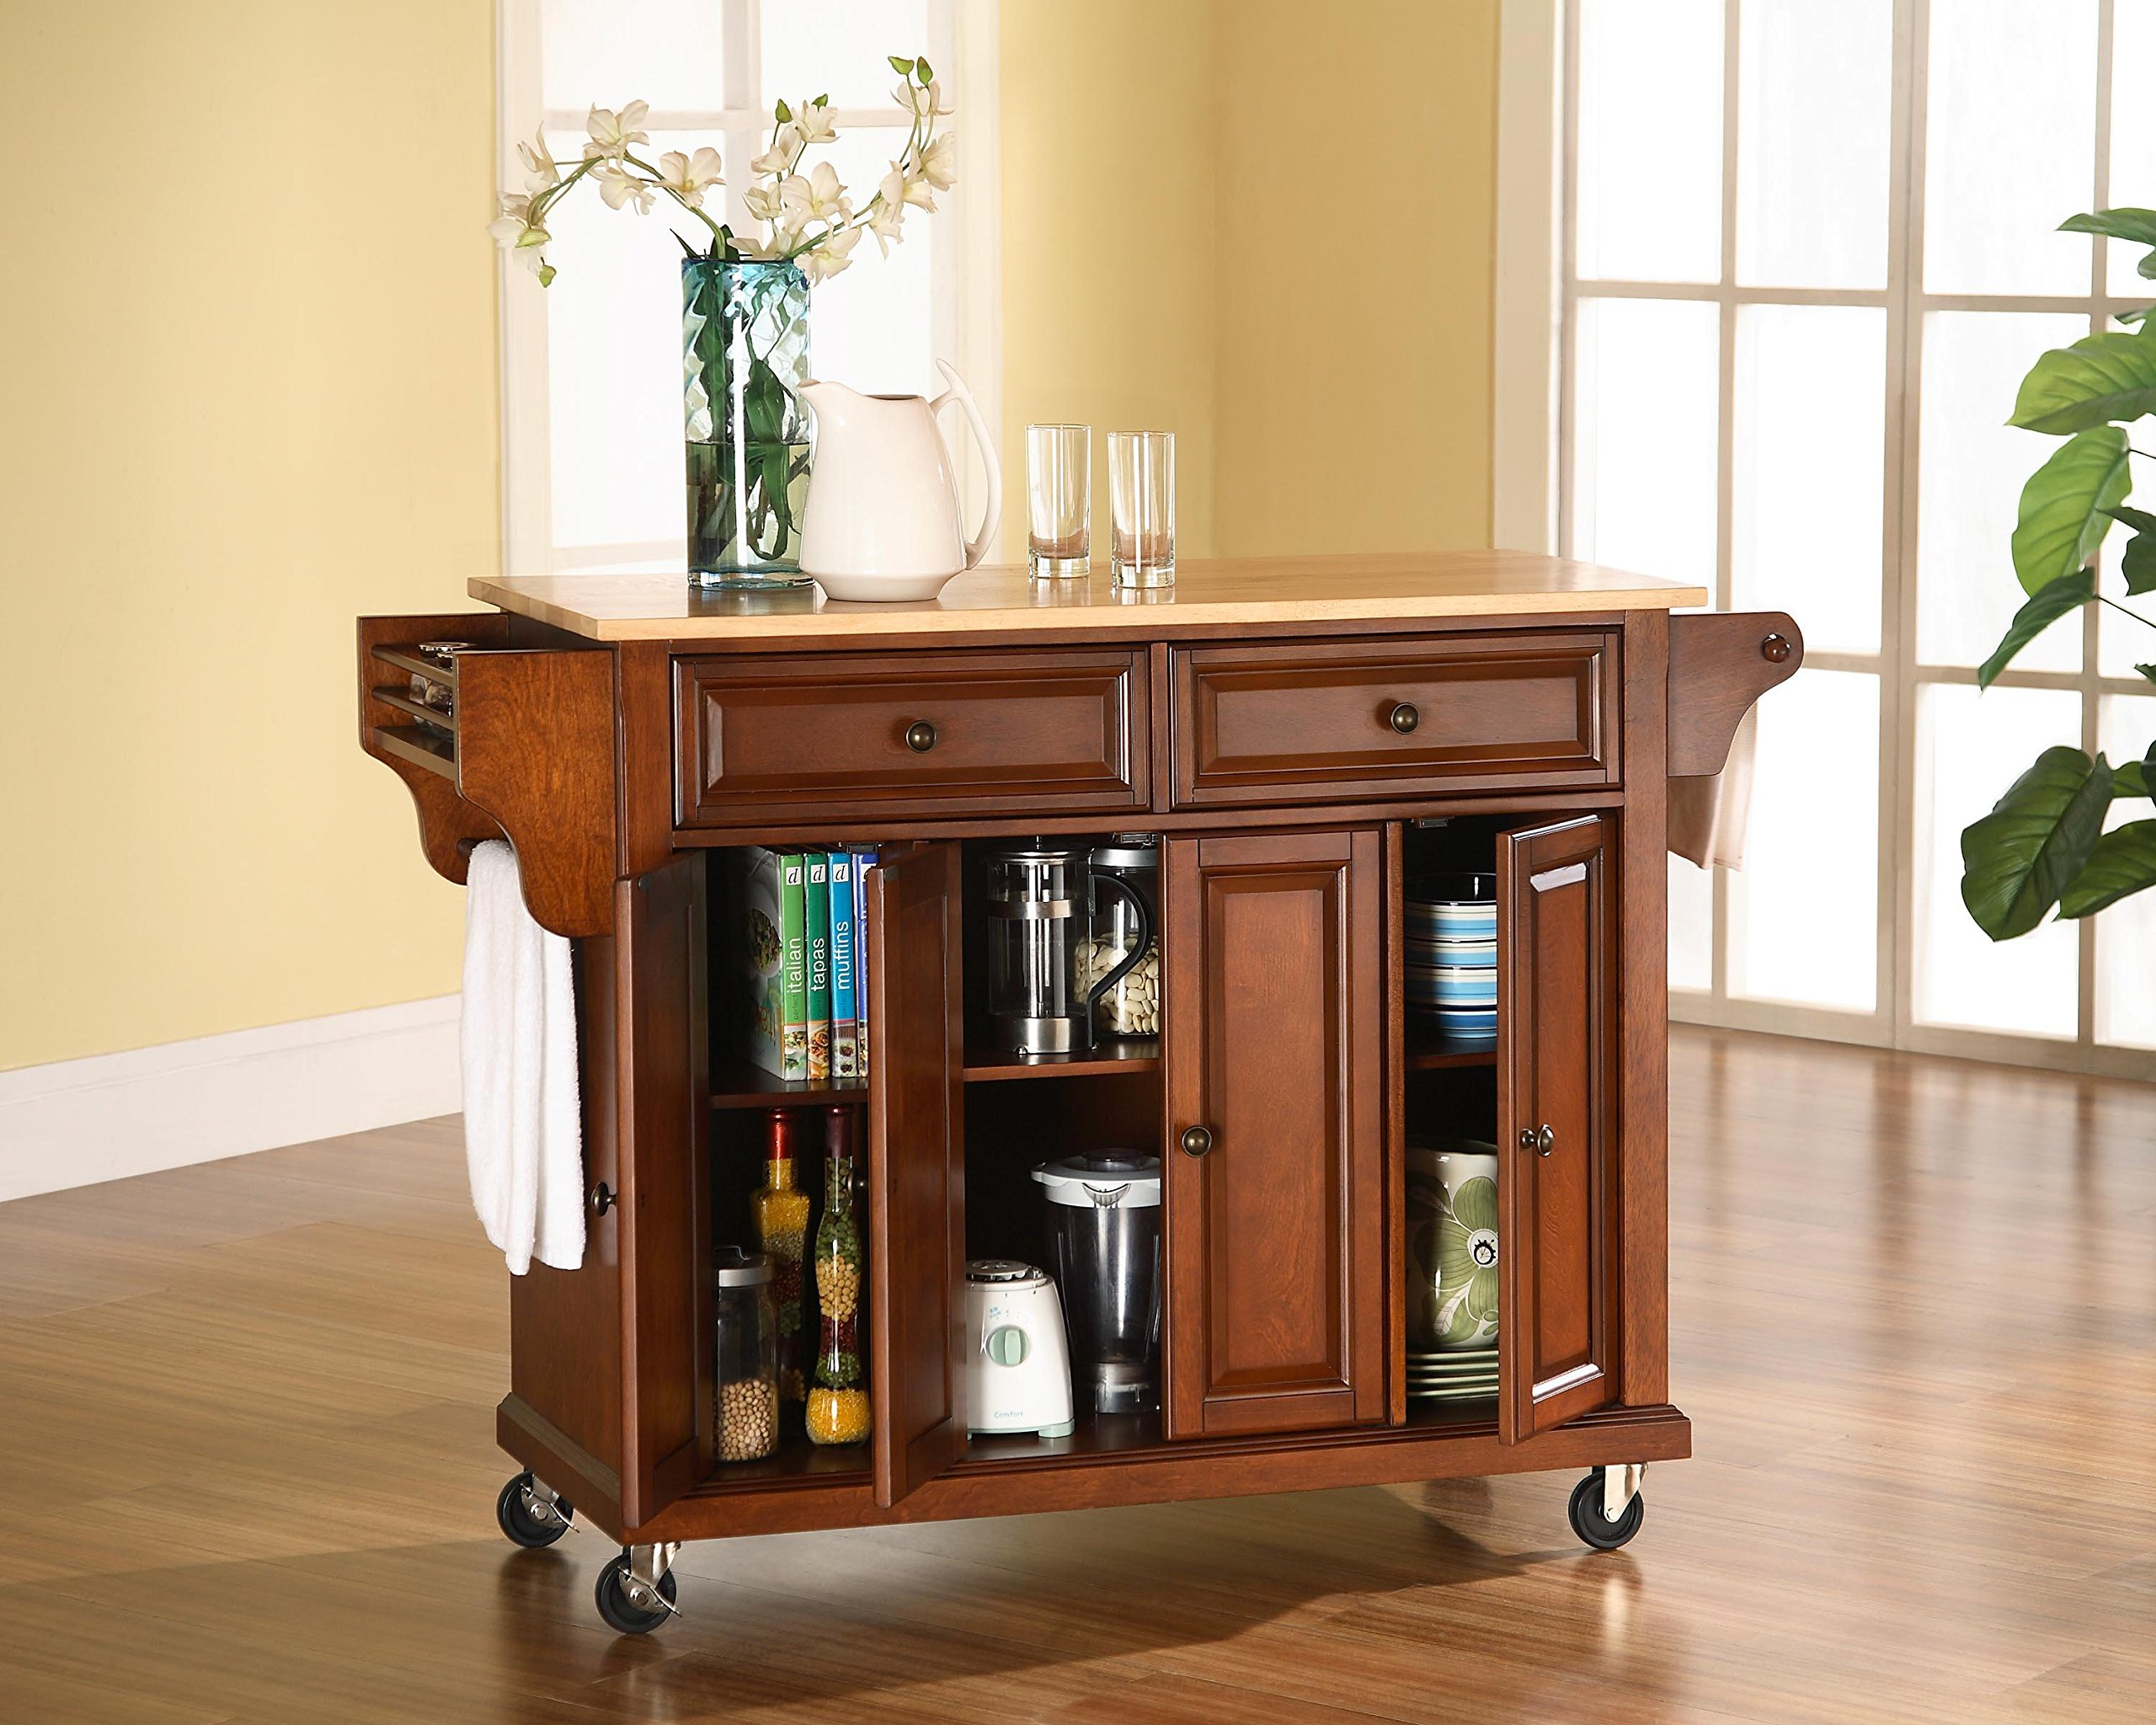 Crosley Furniture Rolling Kitchen Island with Natural Wood Top - White by Crosley Furniture (Image #3)